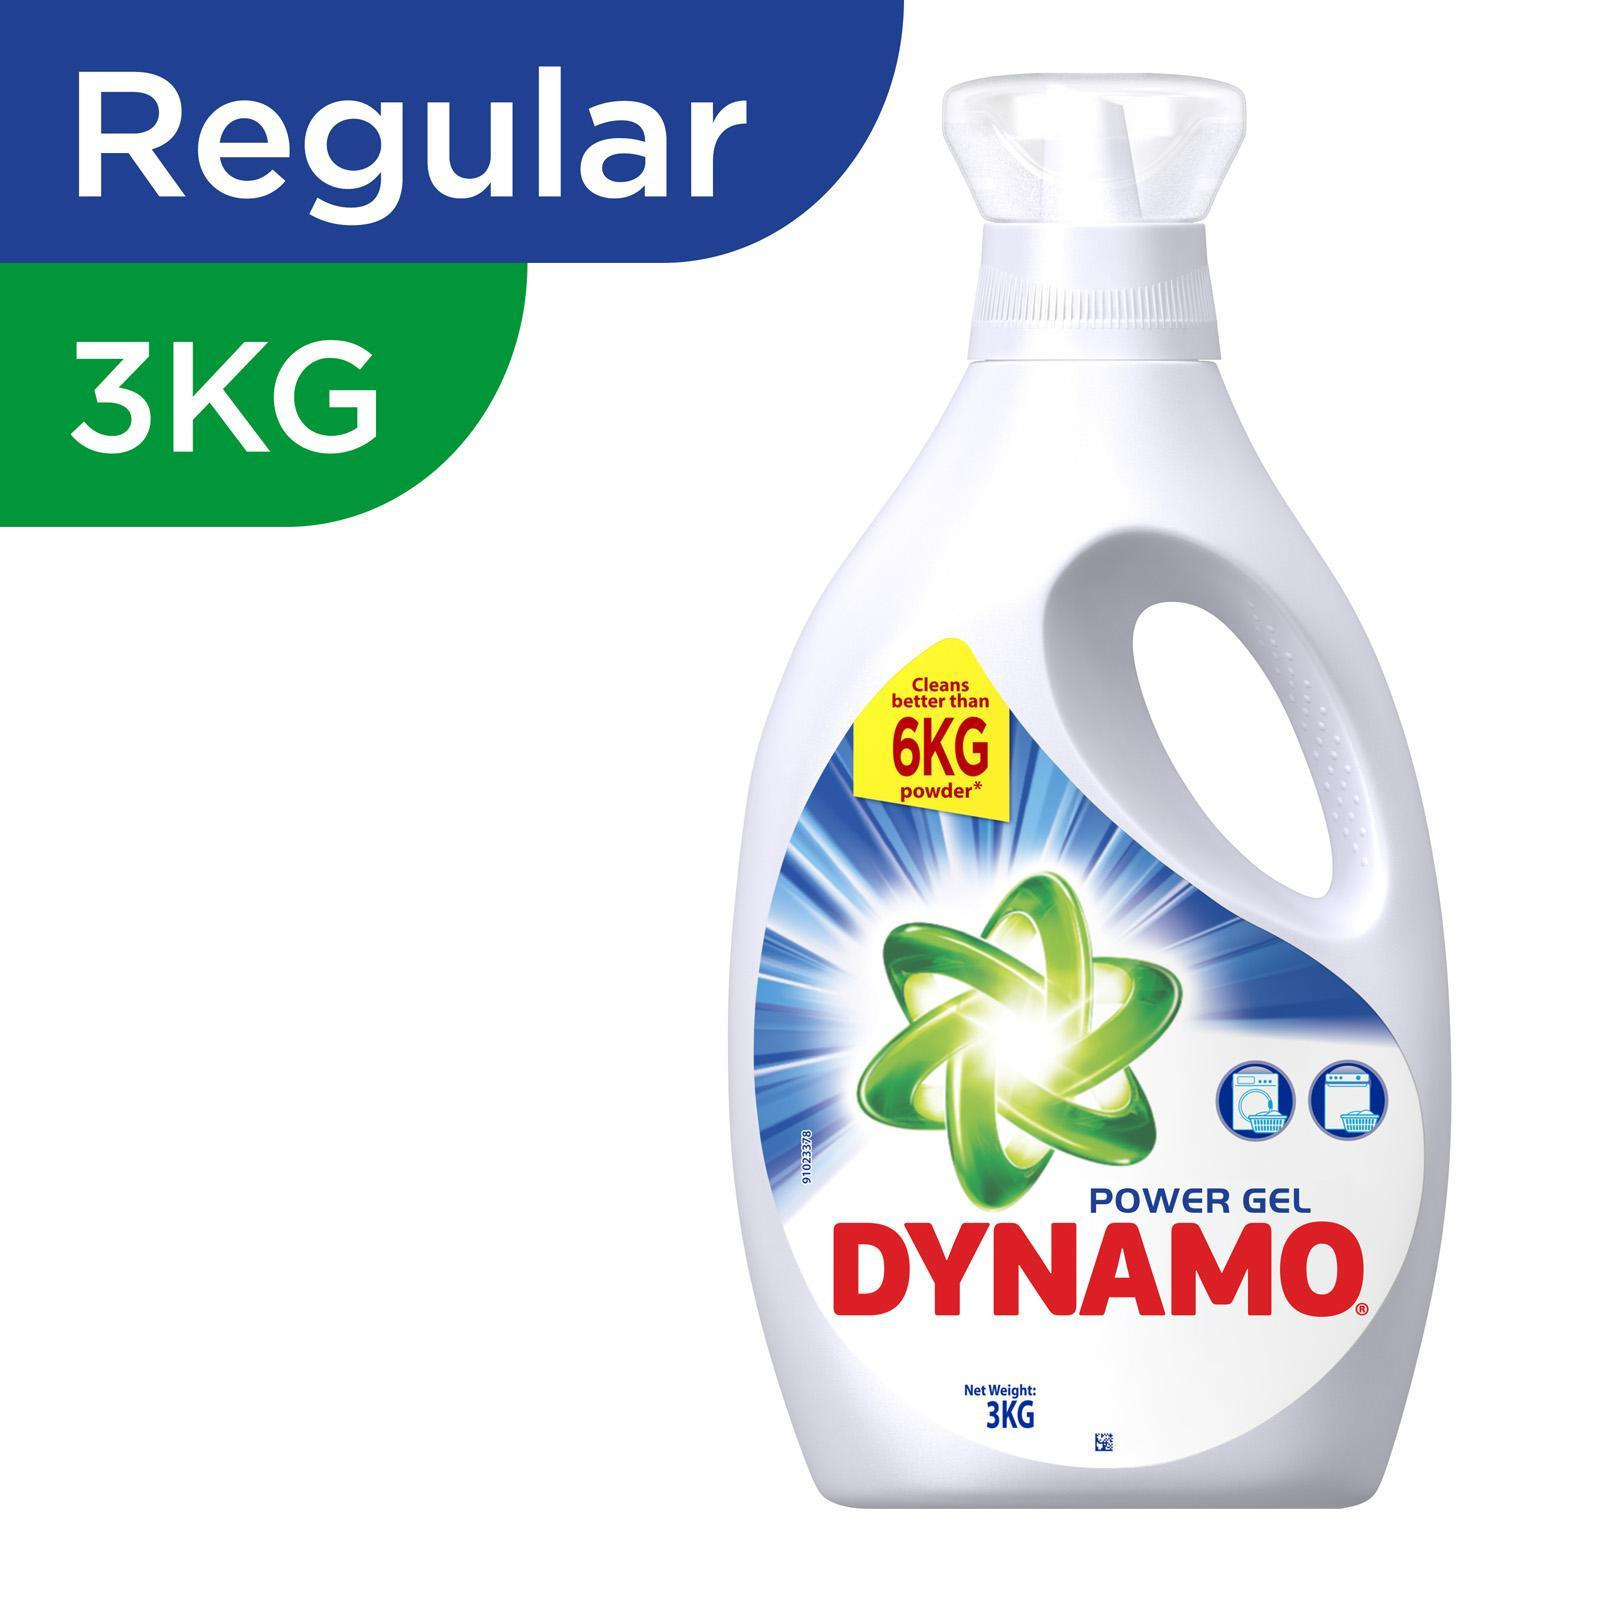 Dynamo Power Gel Laundry Detergent - Regular